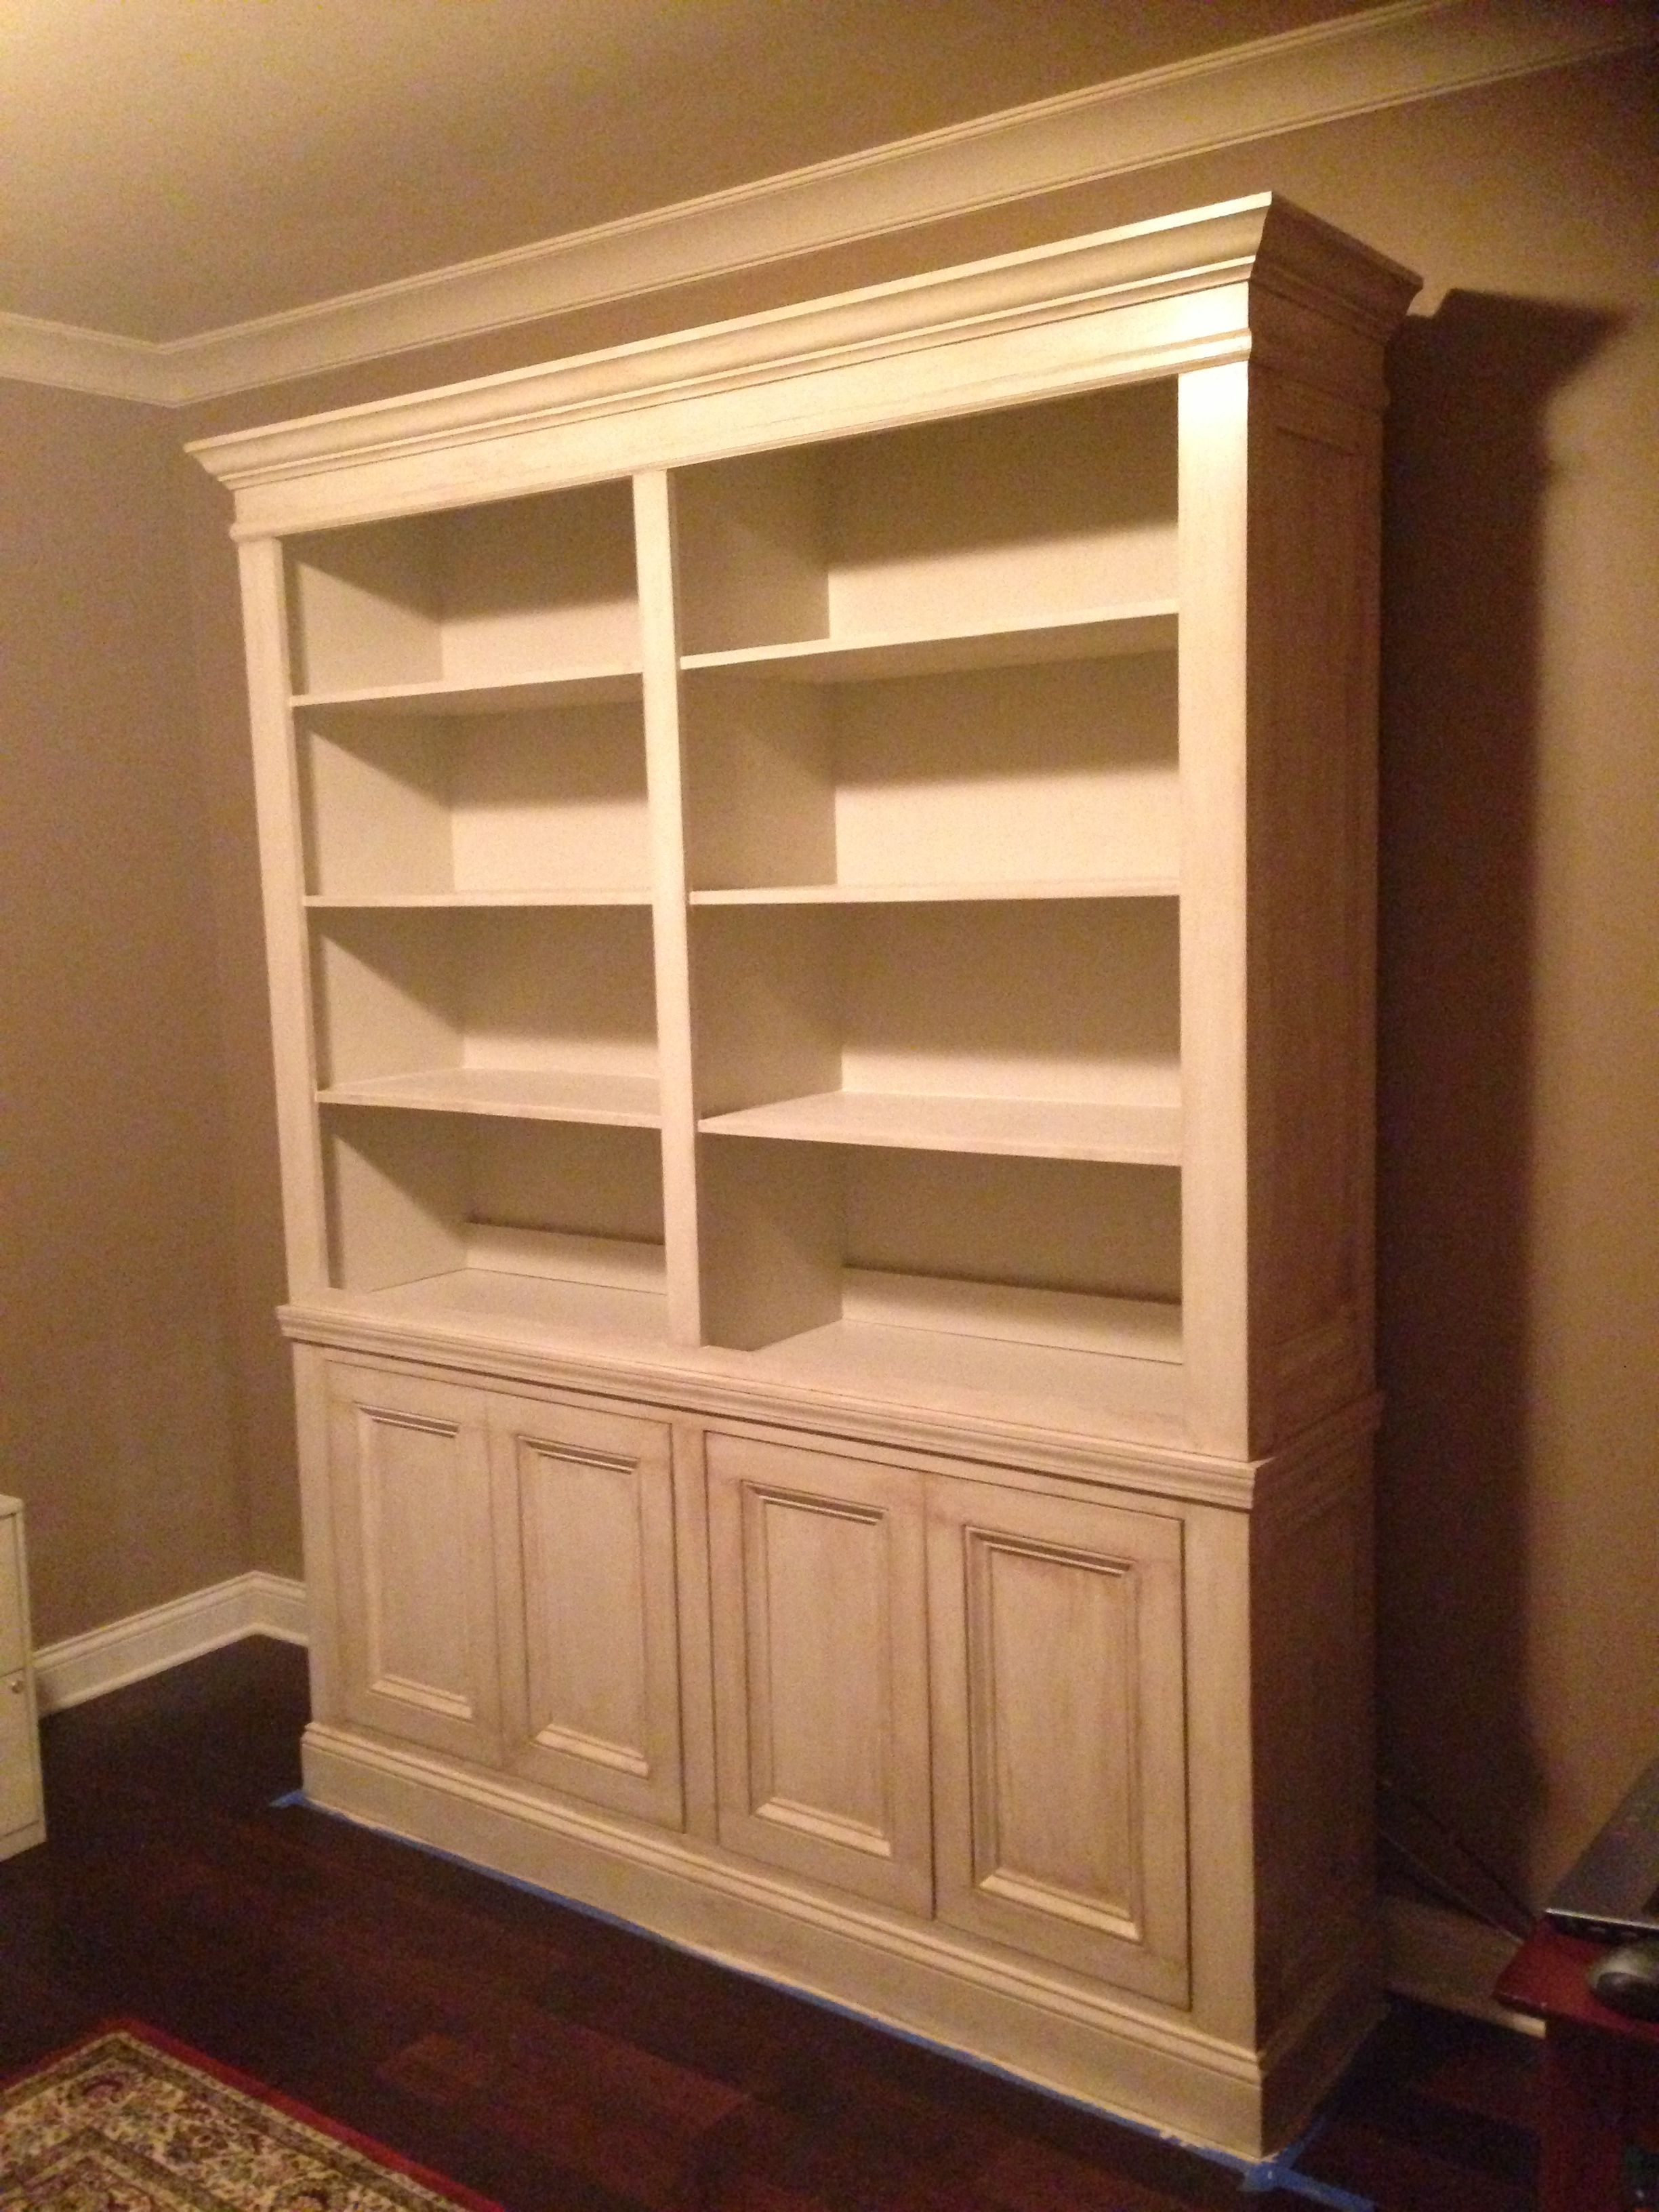 Shanty Sideboard Painted Do It Yourself Home Projects From Ana White Furniture Furniture